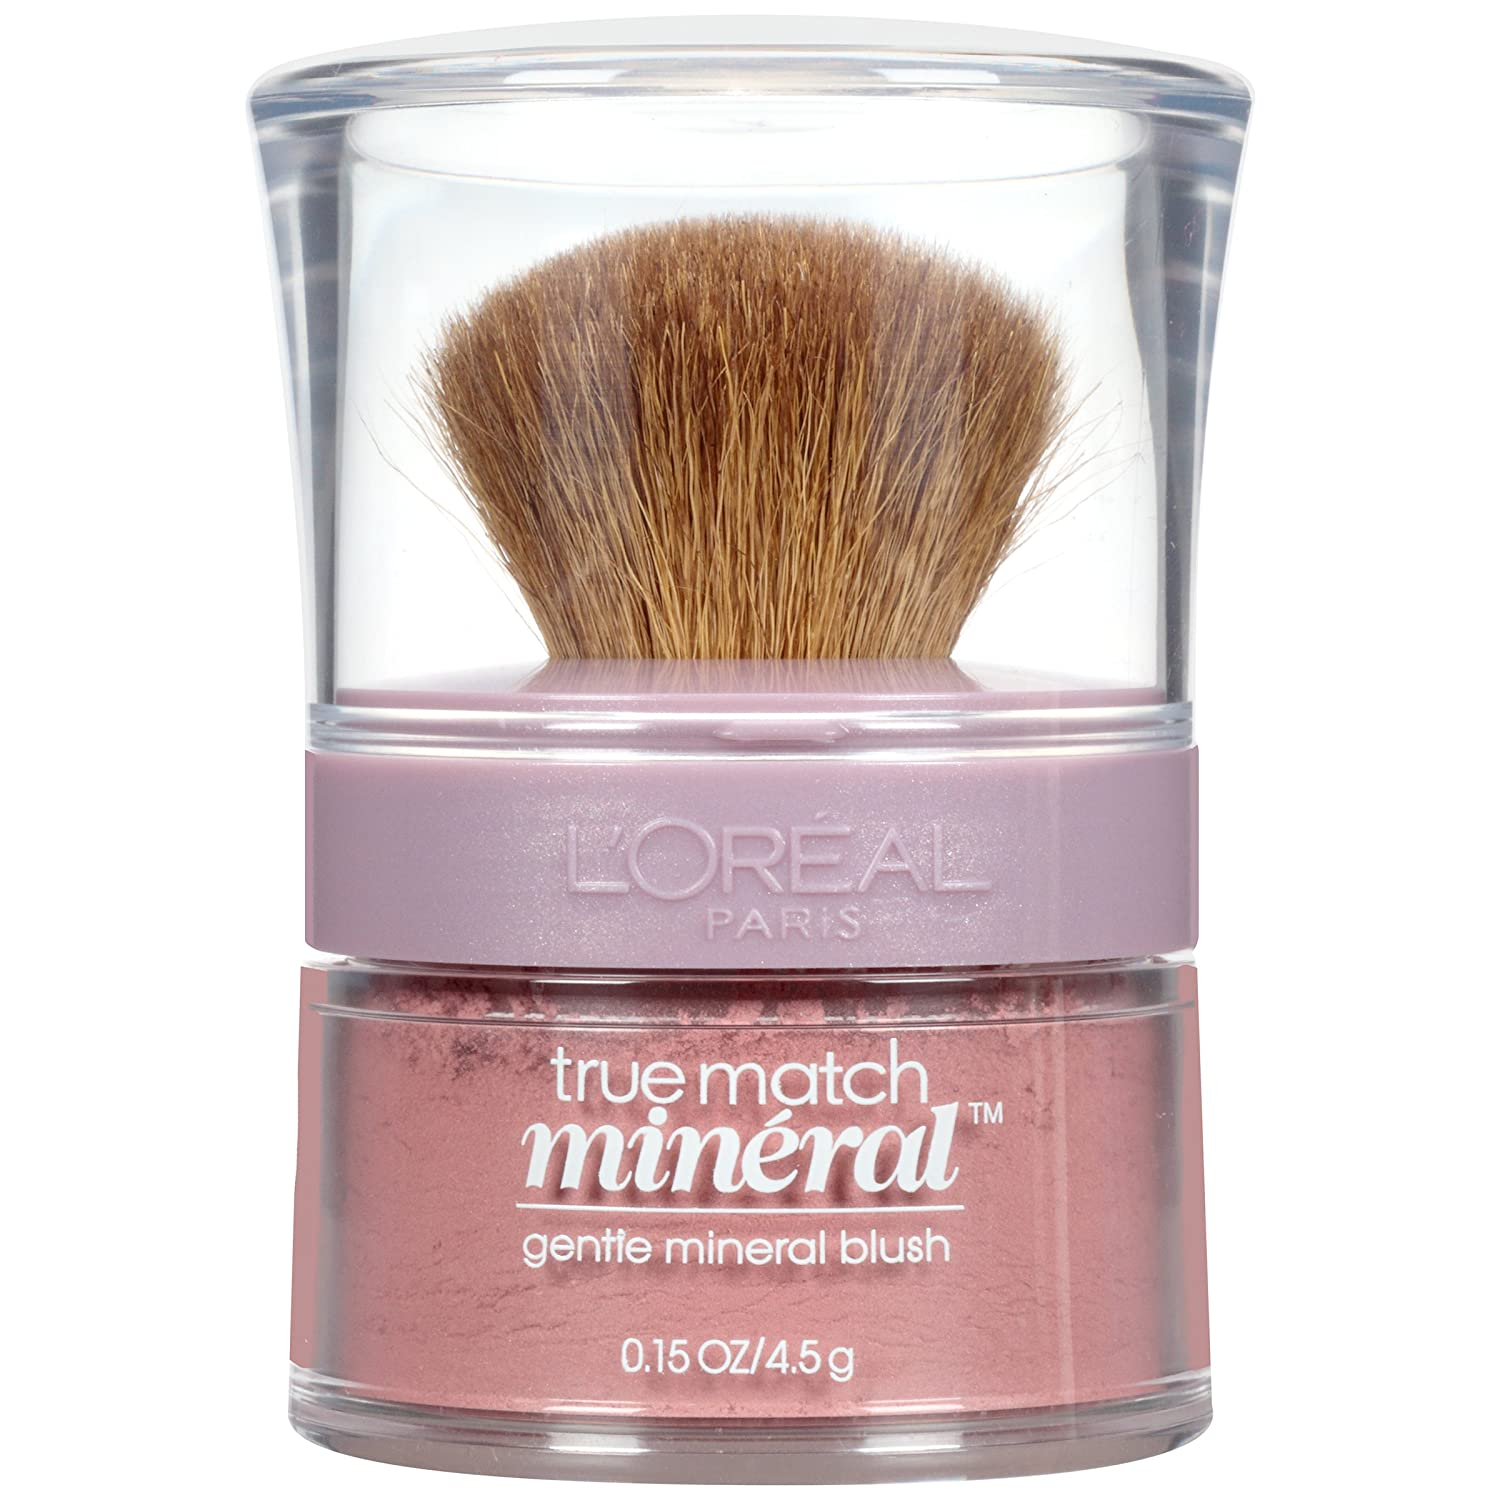 L'Oréal Paris True Match Mineral Blush, Soft Rose, 0.15 oz.